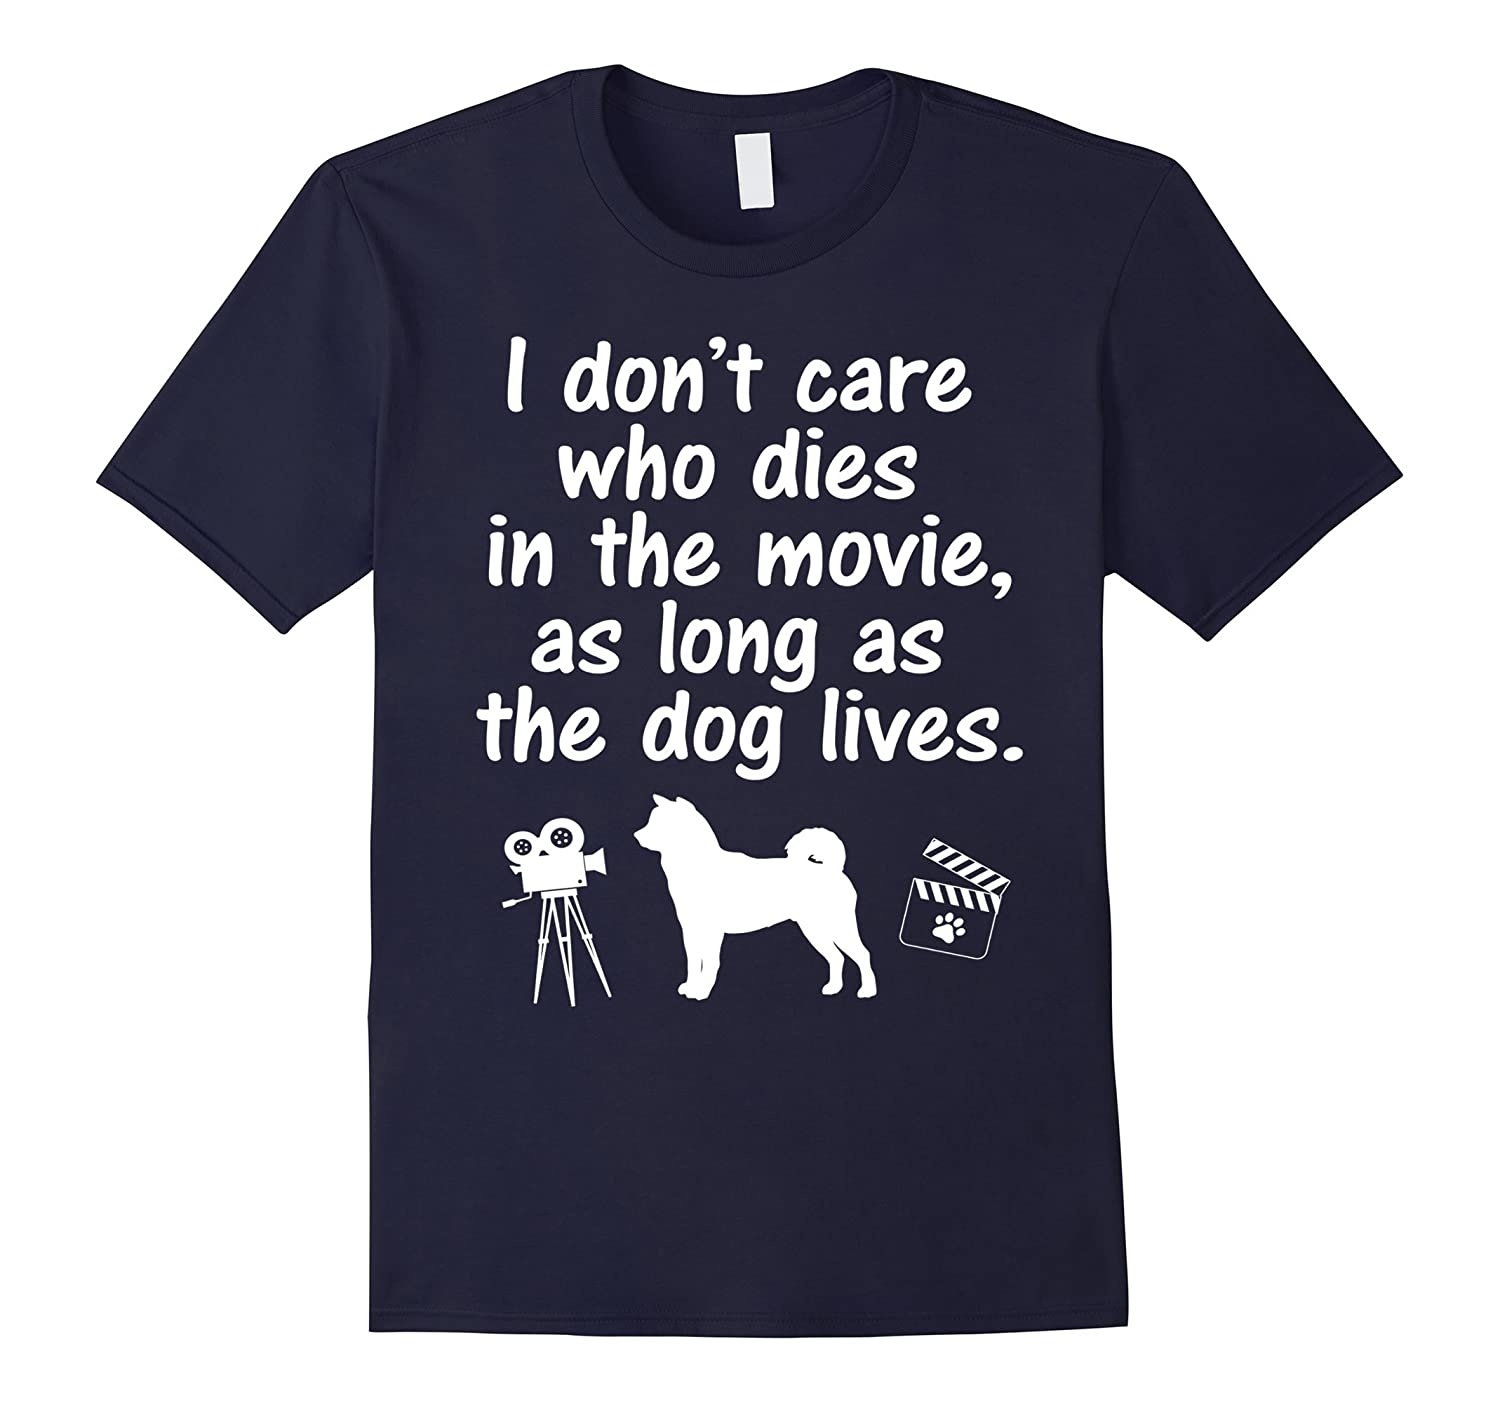 Cute Dog T-Shirt - I Dont Care As Long As The Dog Lives-Vaci